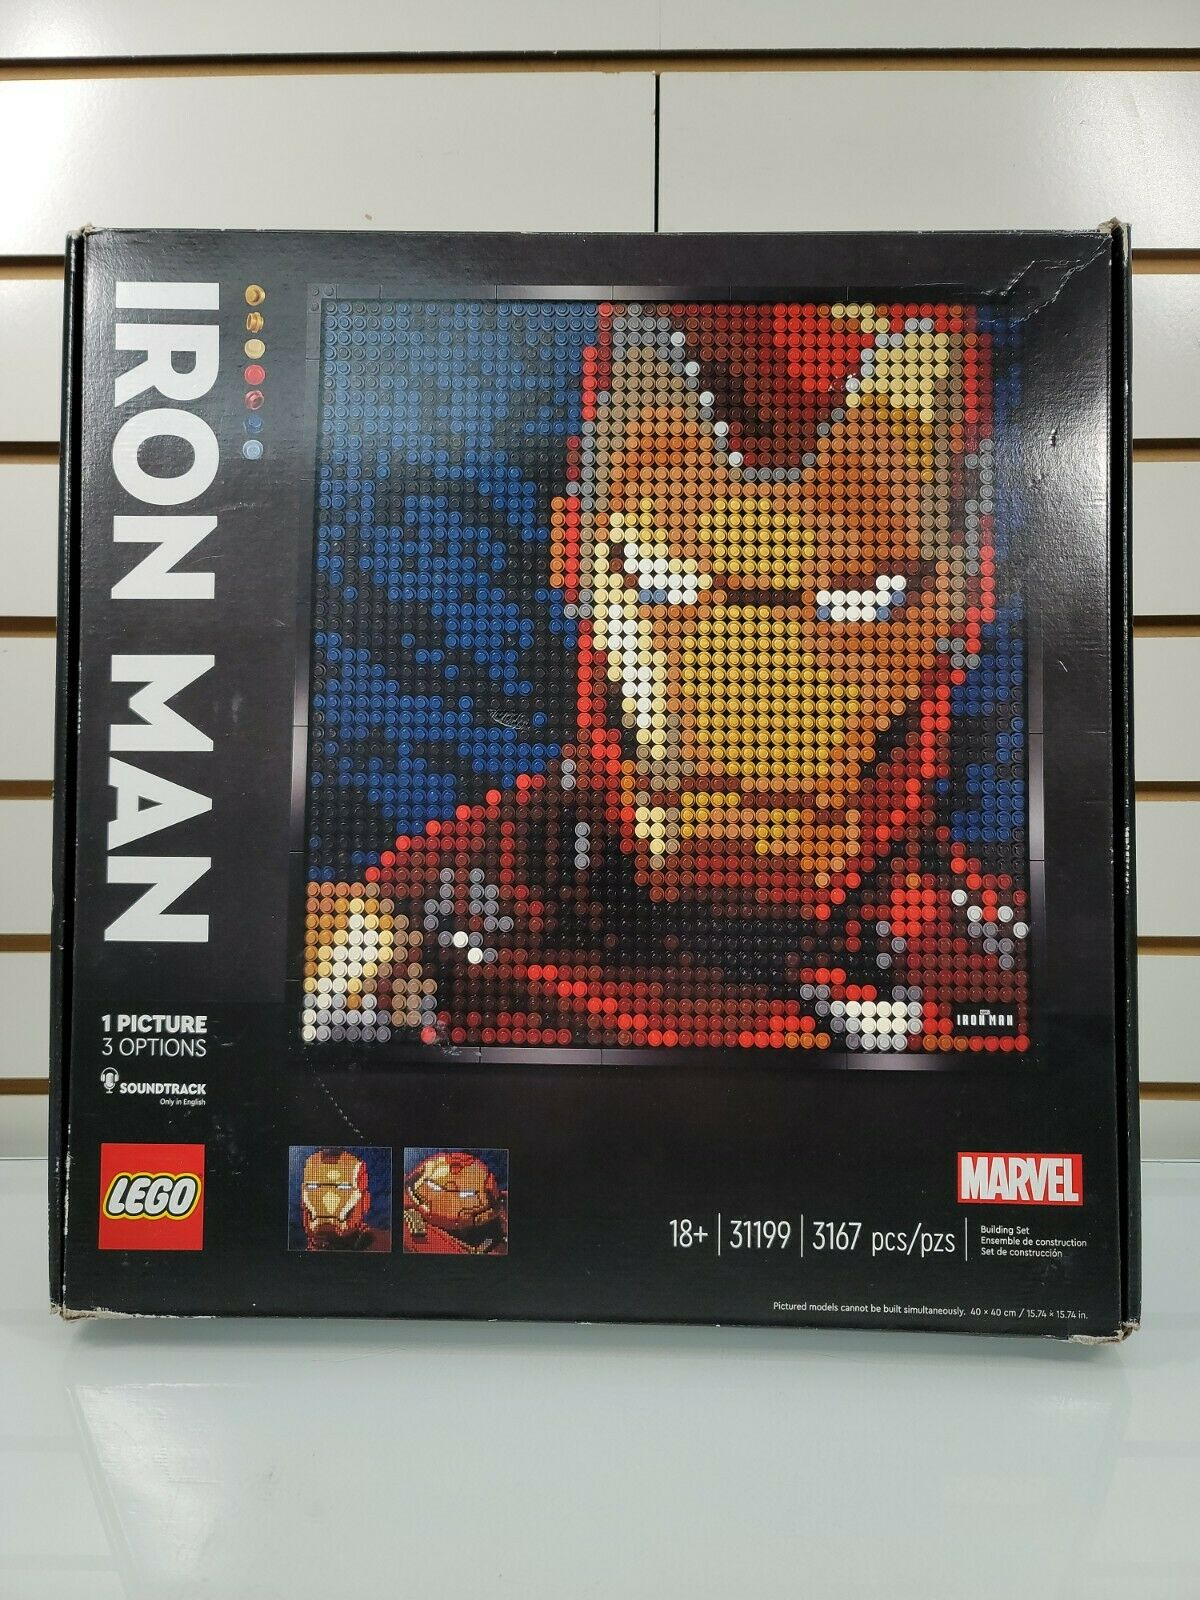 LEGO Marvel Studios Iron Man ART (31199) NOB SEE DESCRIPTION!!! on eBay thumbnail